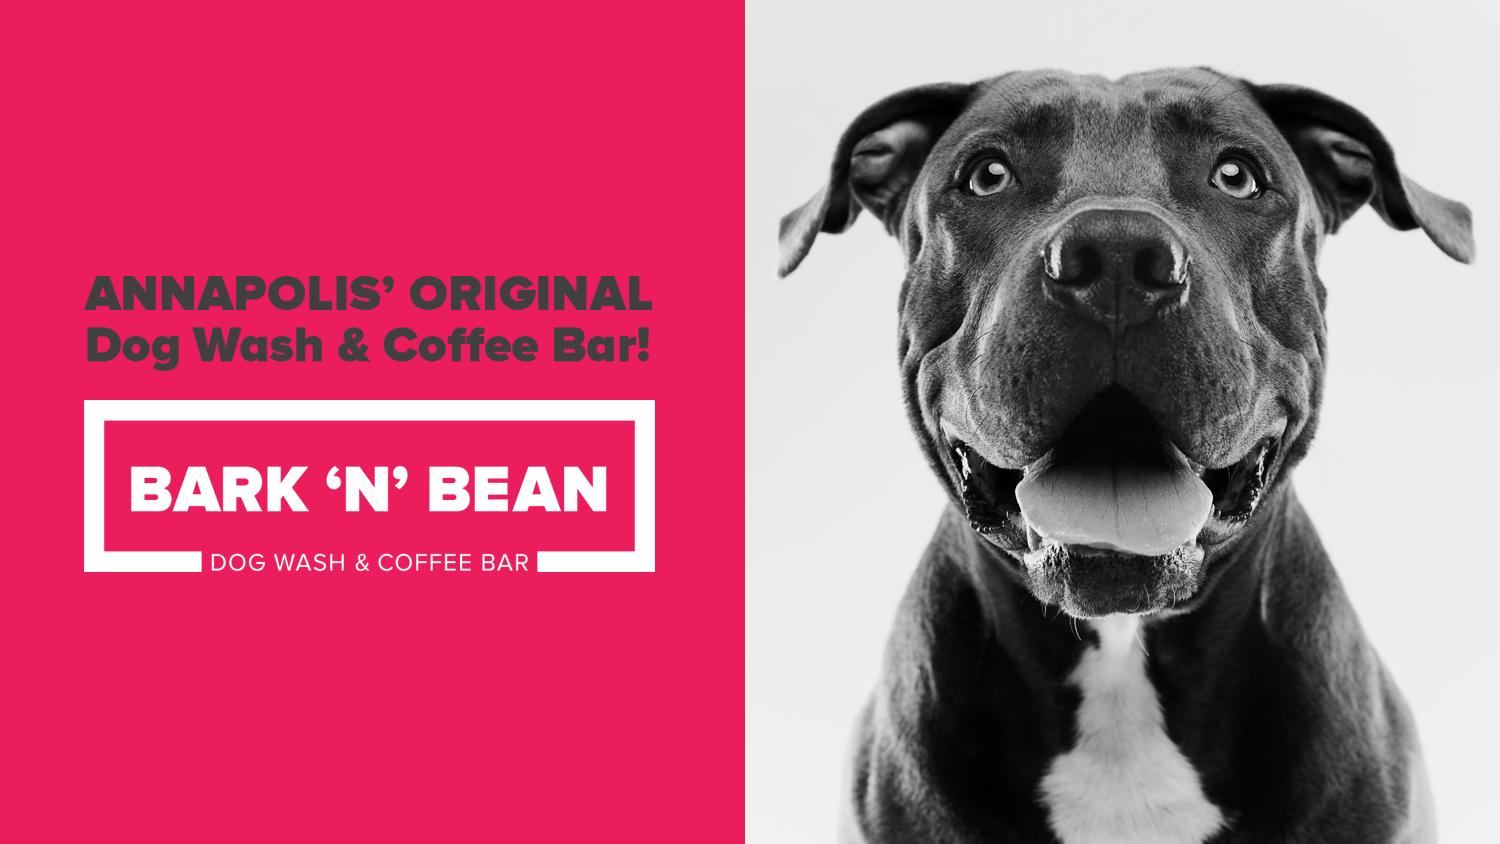 Bark 'N' Bean Dog Wash & Coffee Bar